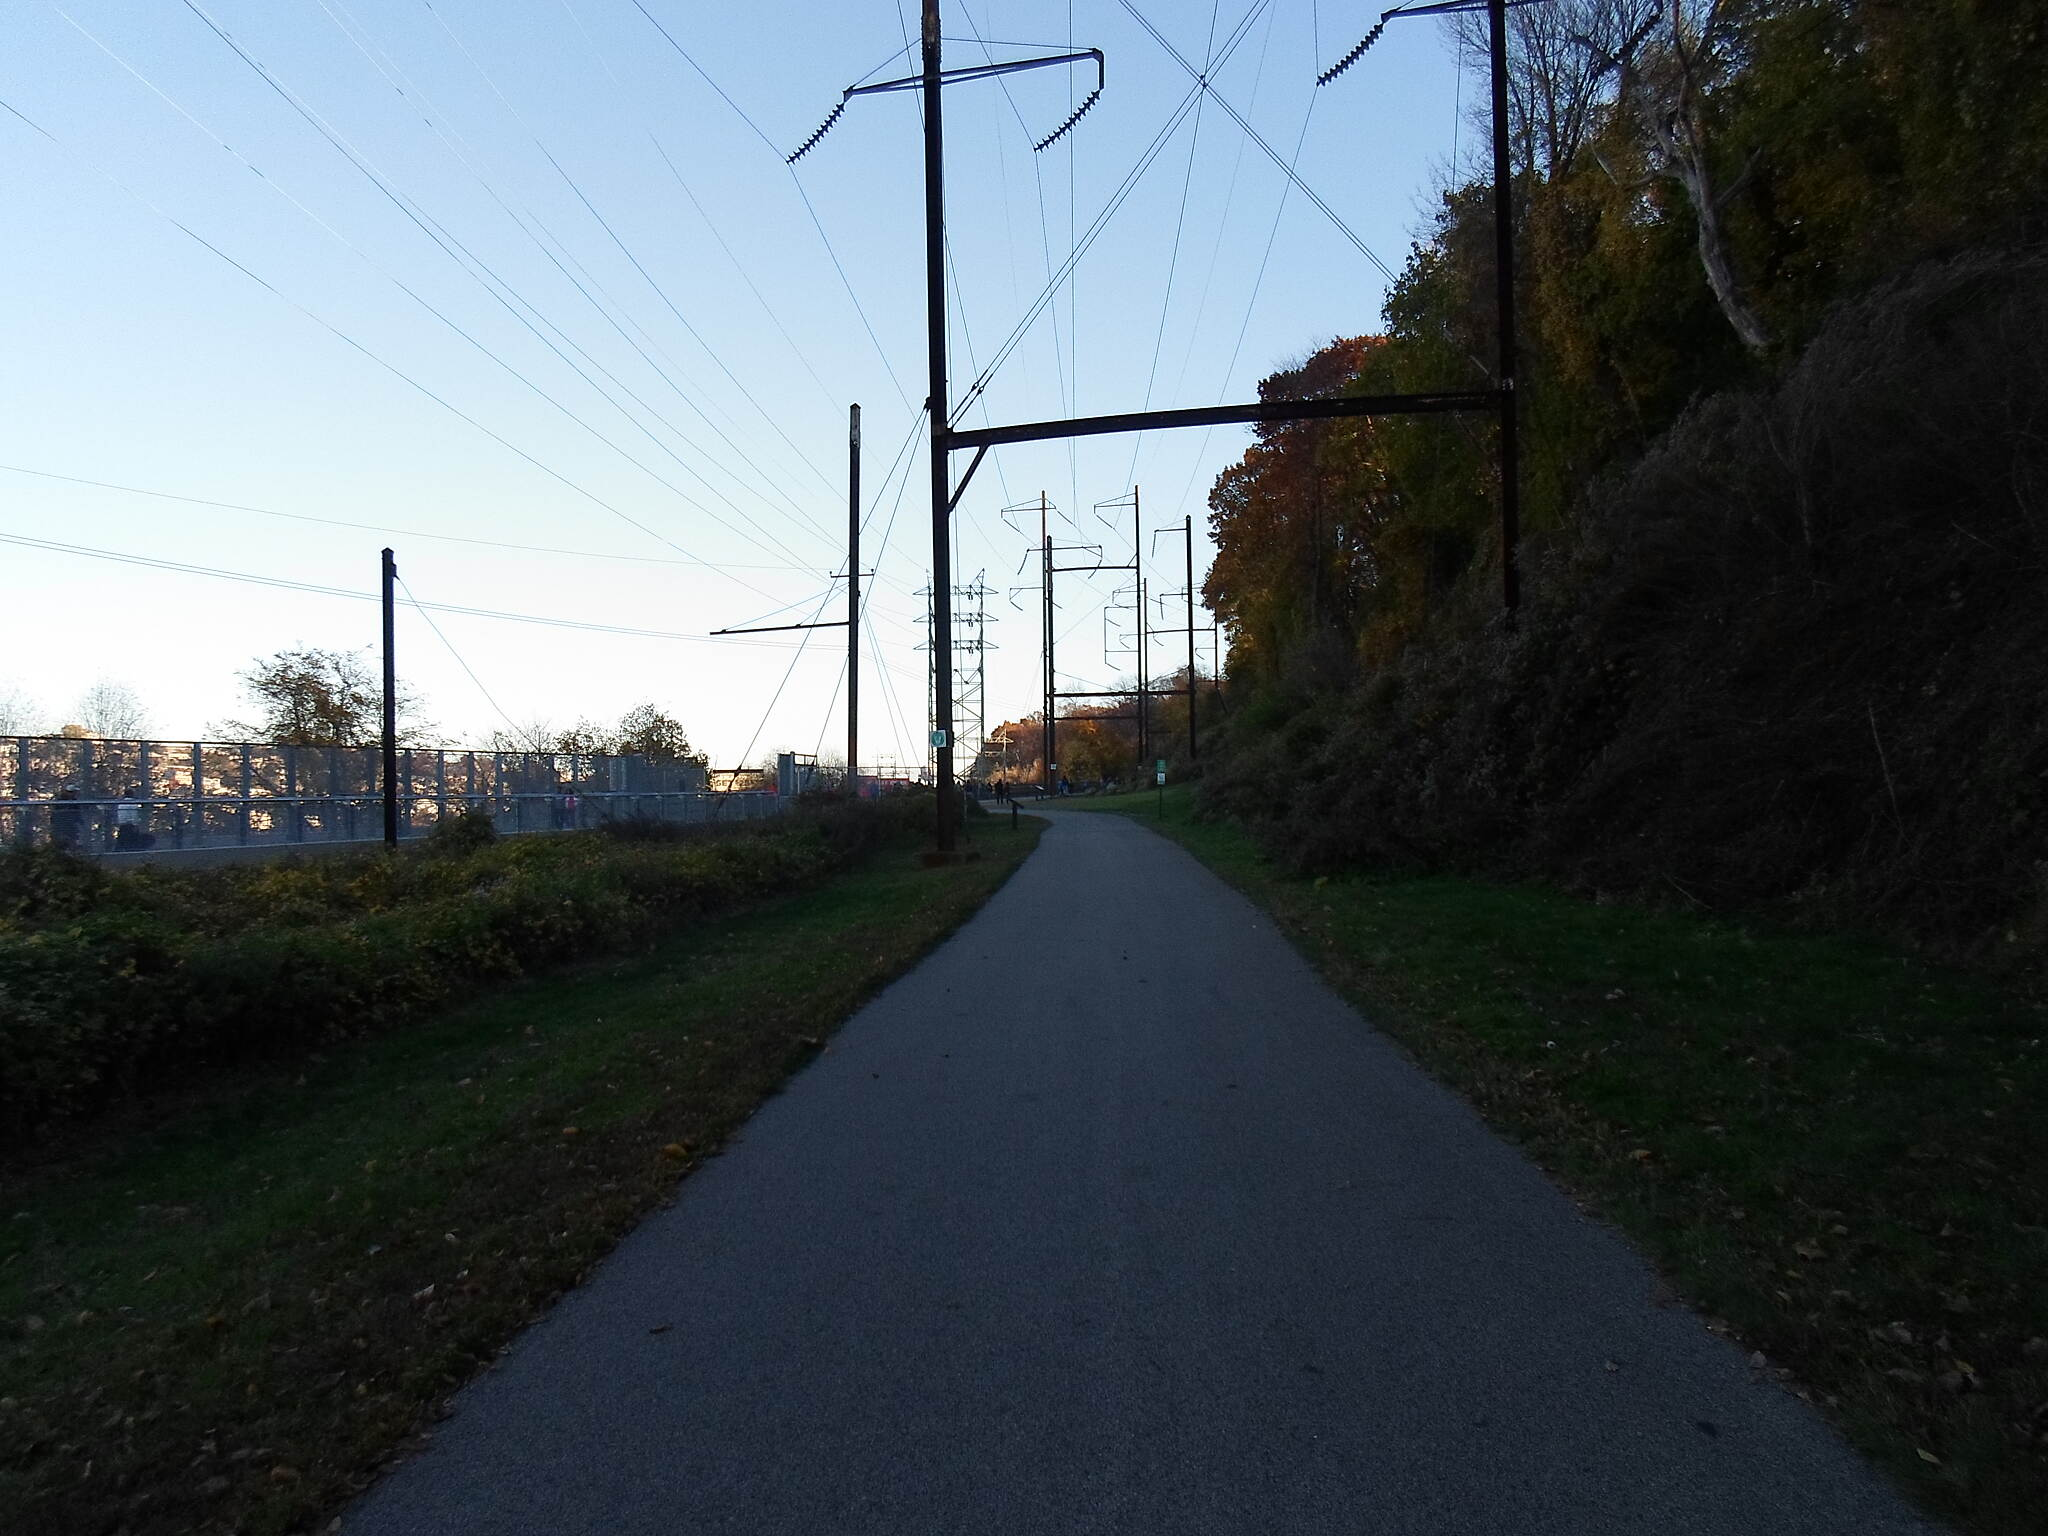 Cynwyd Heritage Trail Cynwyd Heritage Trail Approaching the junction with the Manayunk Bridge, which can be seen on the left.